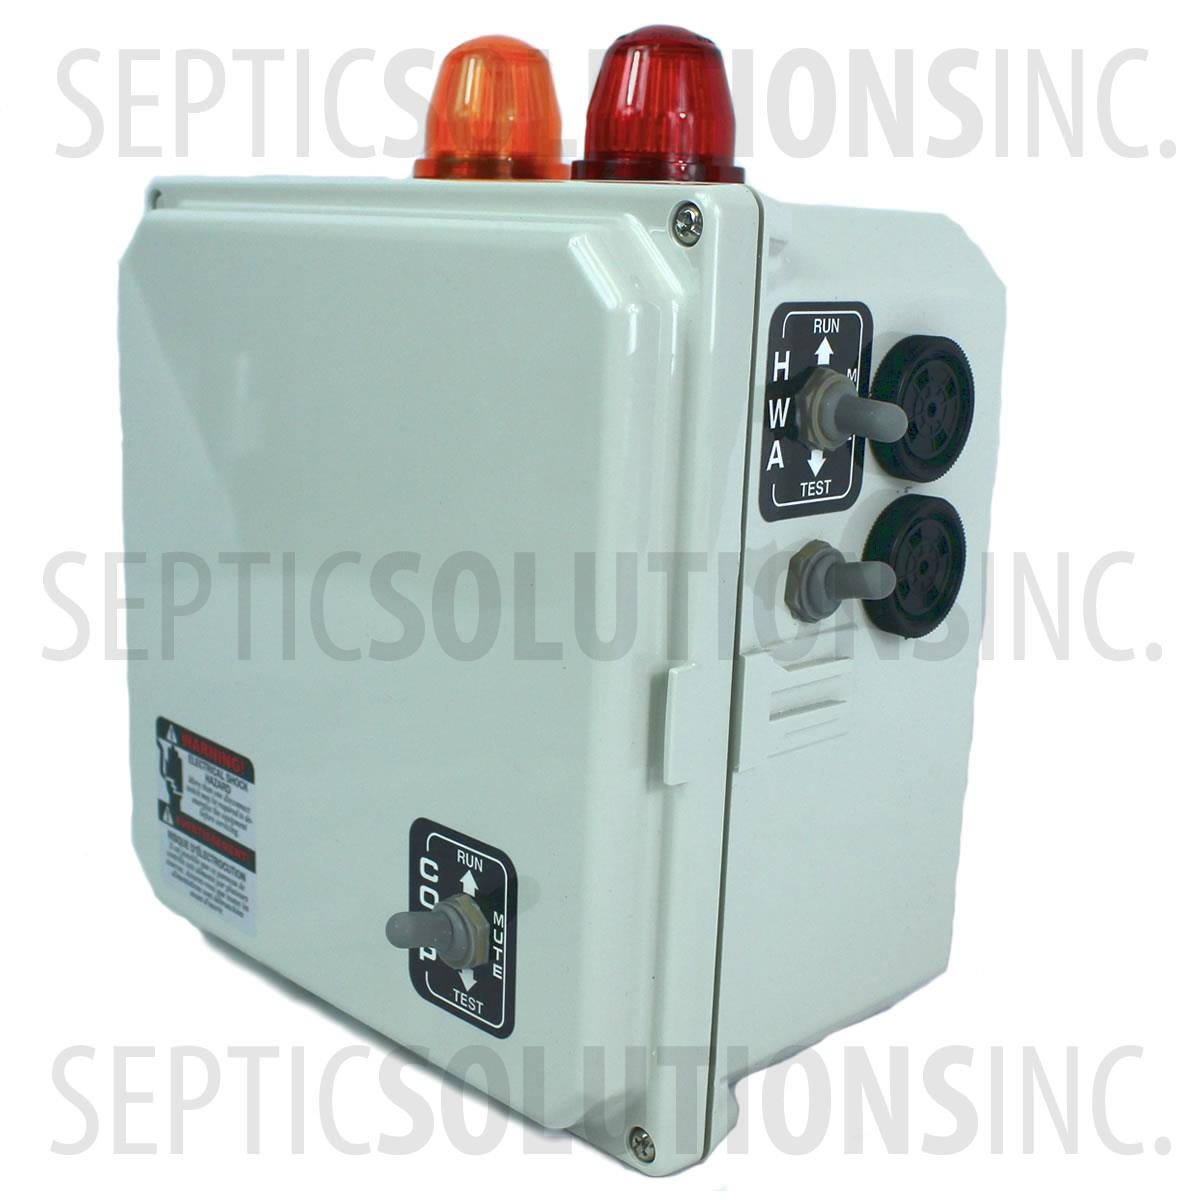 50B138_2?w=300 aerobic septic system control panels and alarms free shipping  at gsmportal.co